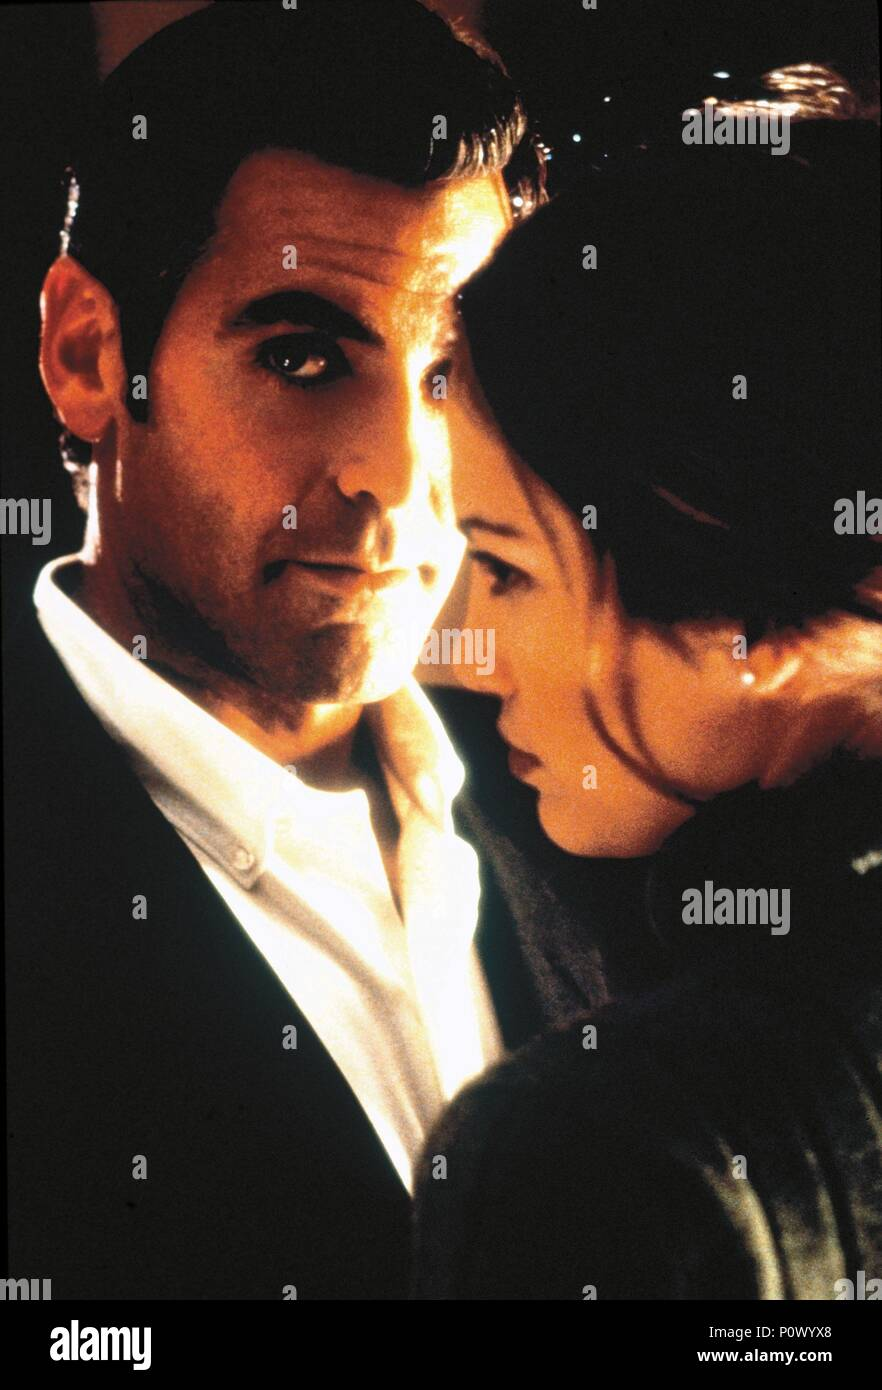 Original Film Title: OUT OF SIGHT.  English Title: OUT OF SIGHT.  Film Director: STEVEN SODERBERGH.  Year: 1998.  Stars: GEORGE CLOONEY; JENNIFER LOPEZ. Credit: UNIVERSAL PICTURES / MORTON, MERRICK / Album Stock Photo